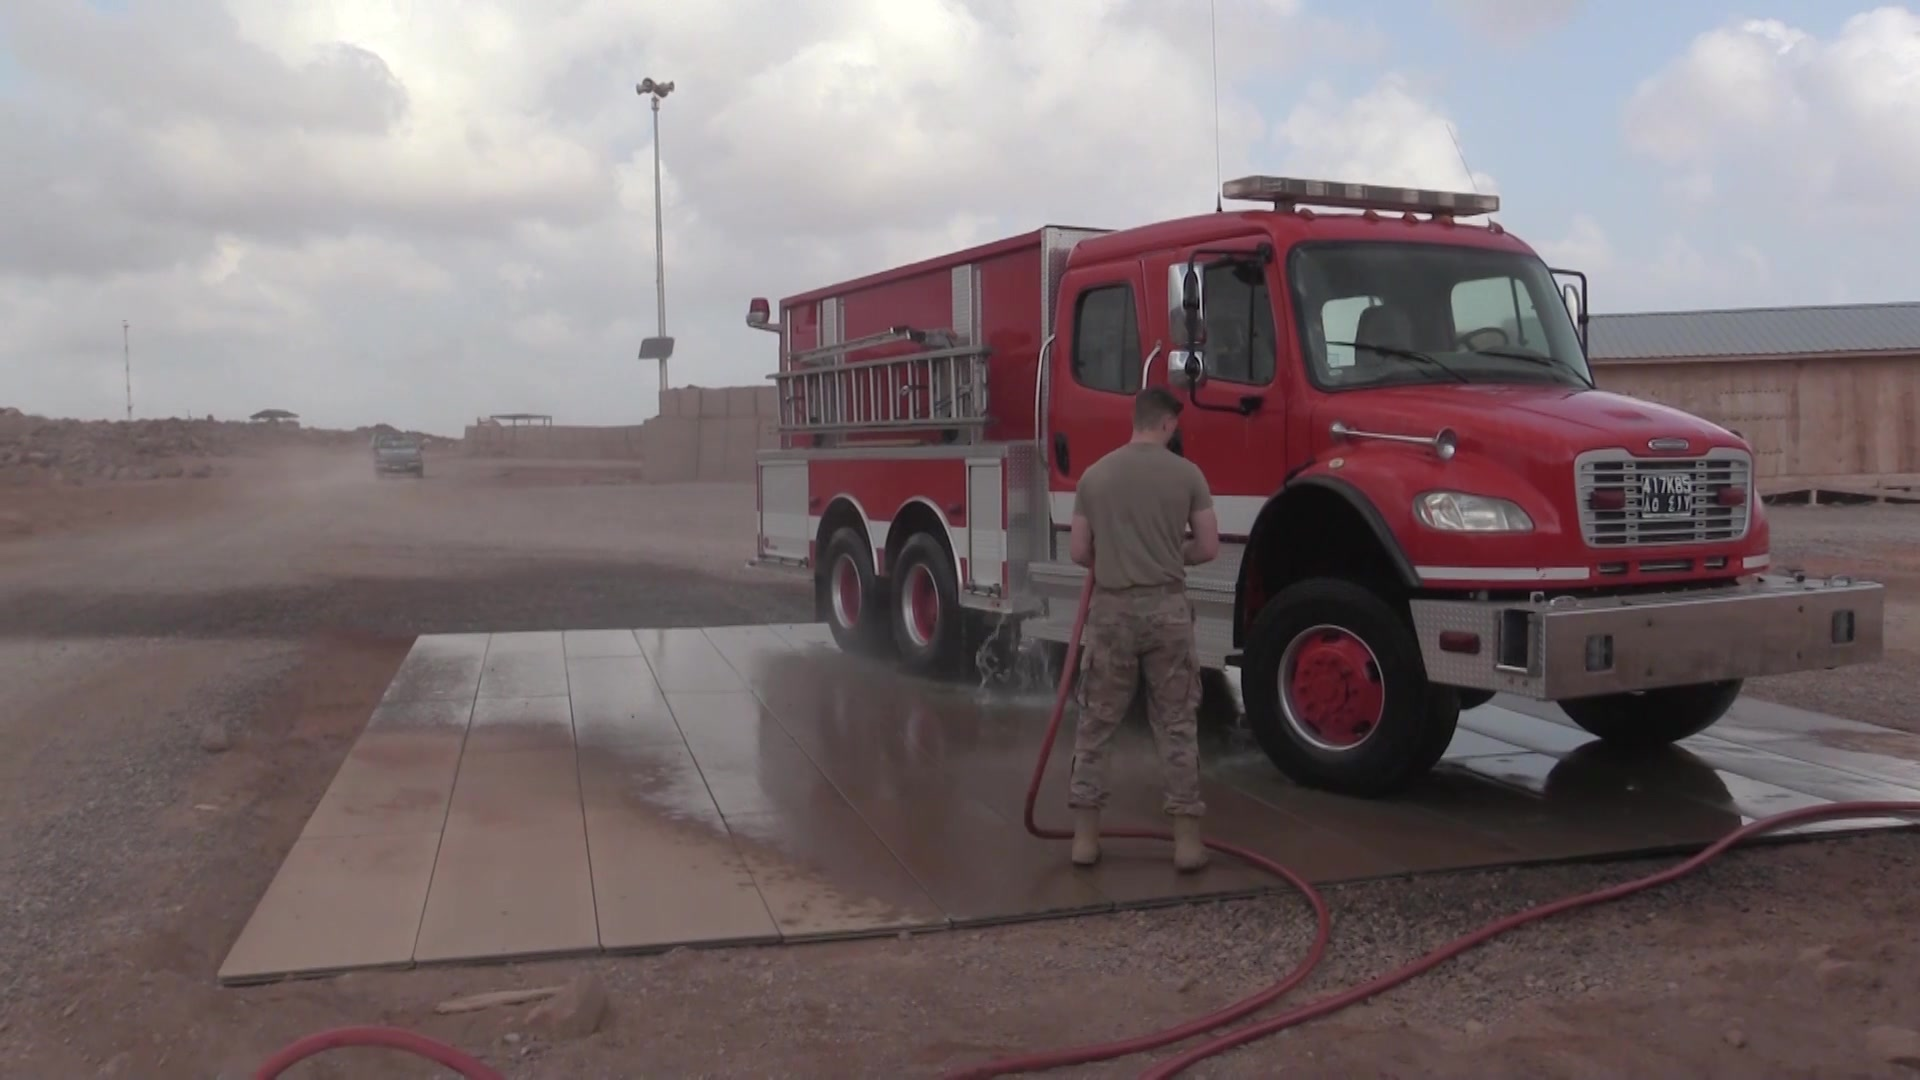 870TH AES Fire Department Expands Arsenal